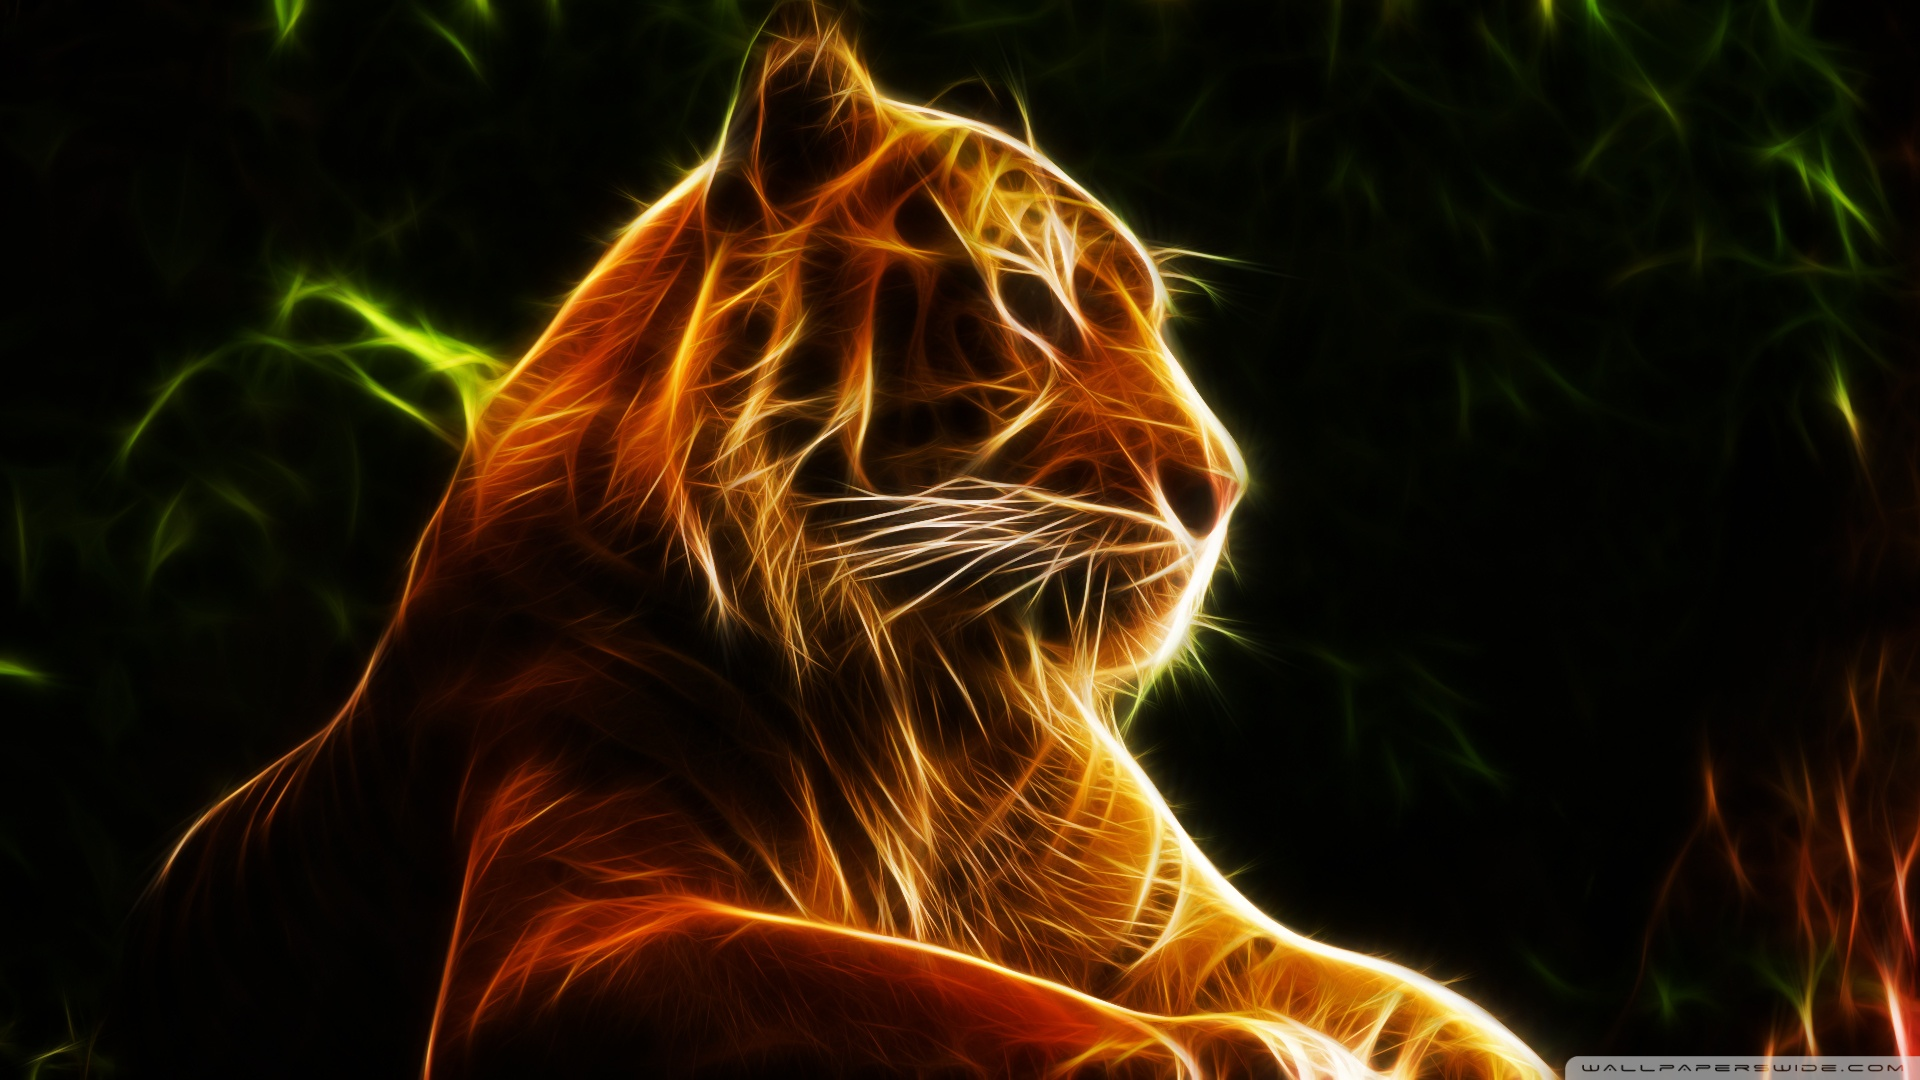 Abstract Wallpaper White Tigers Wallpaper